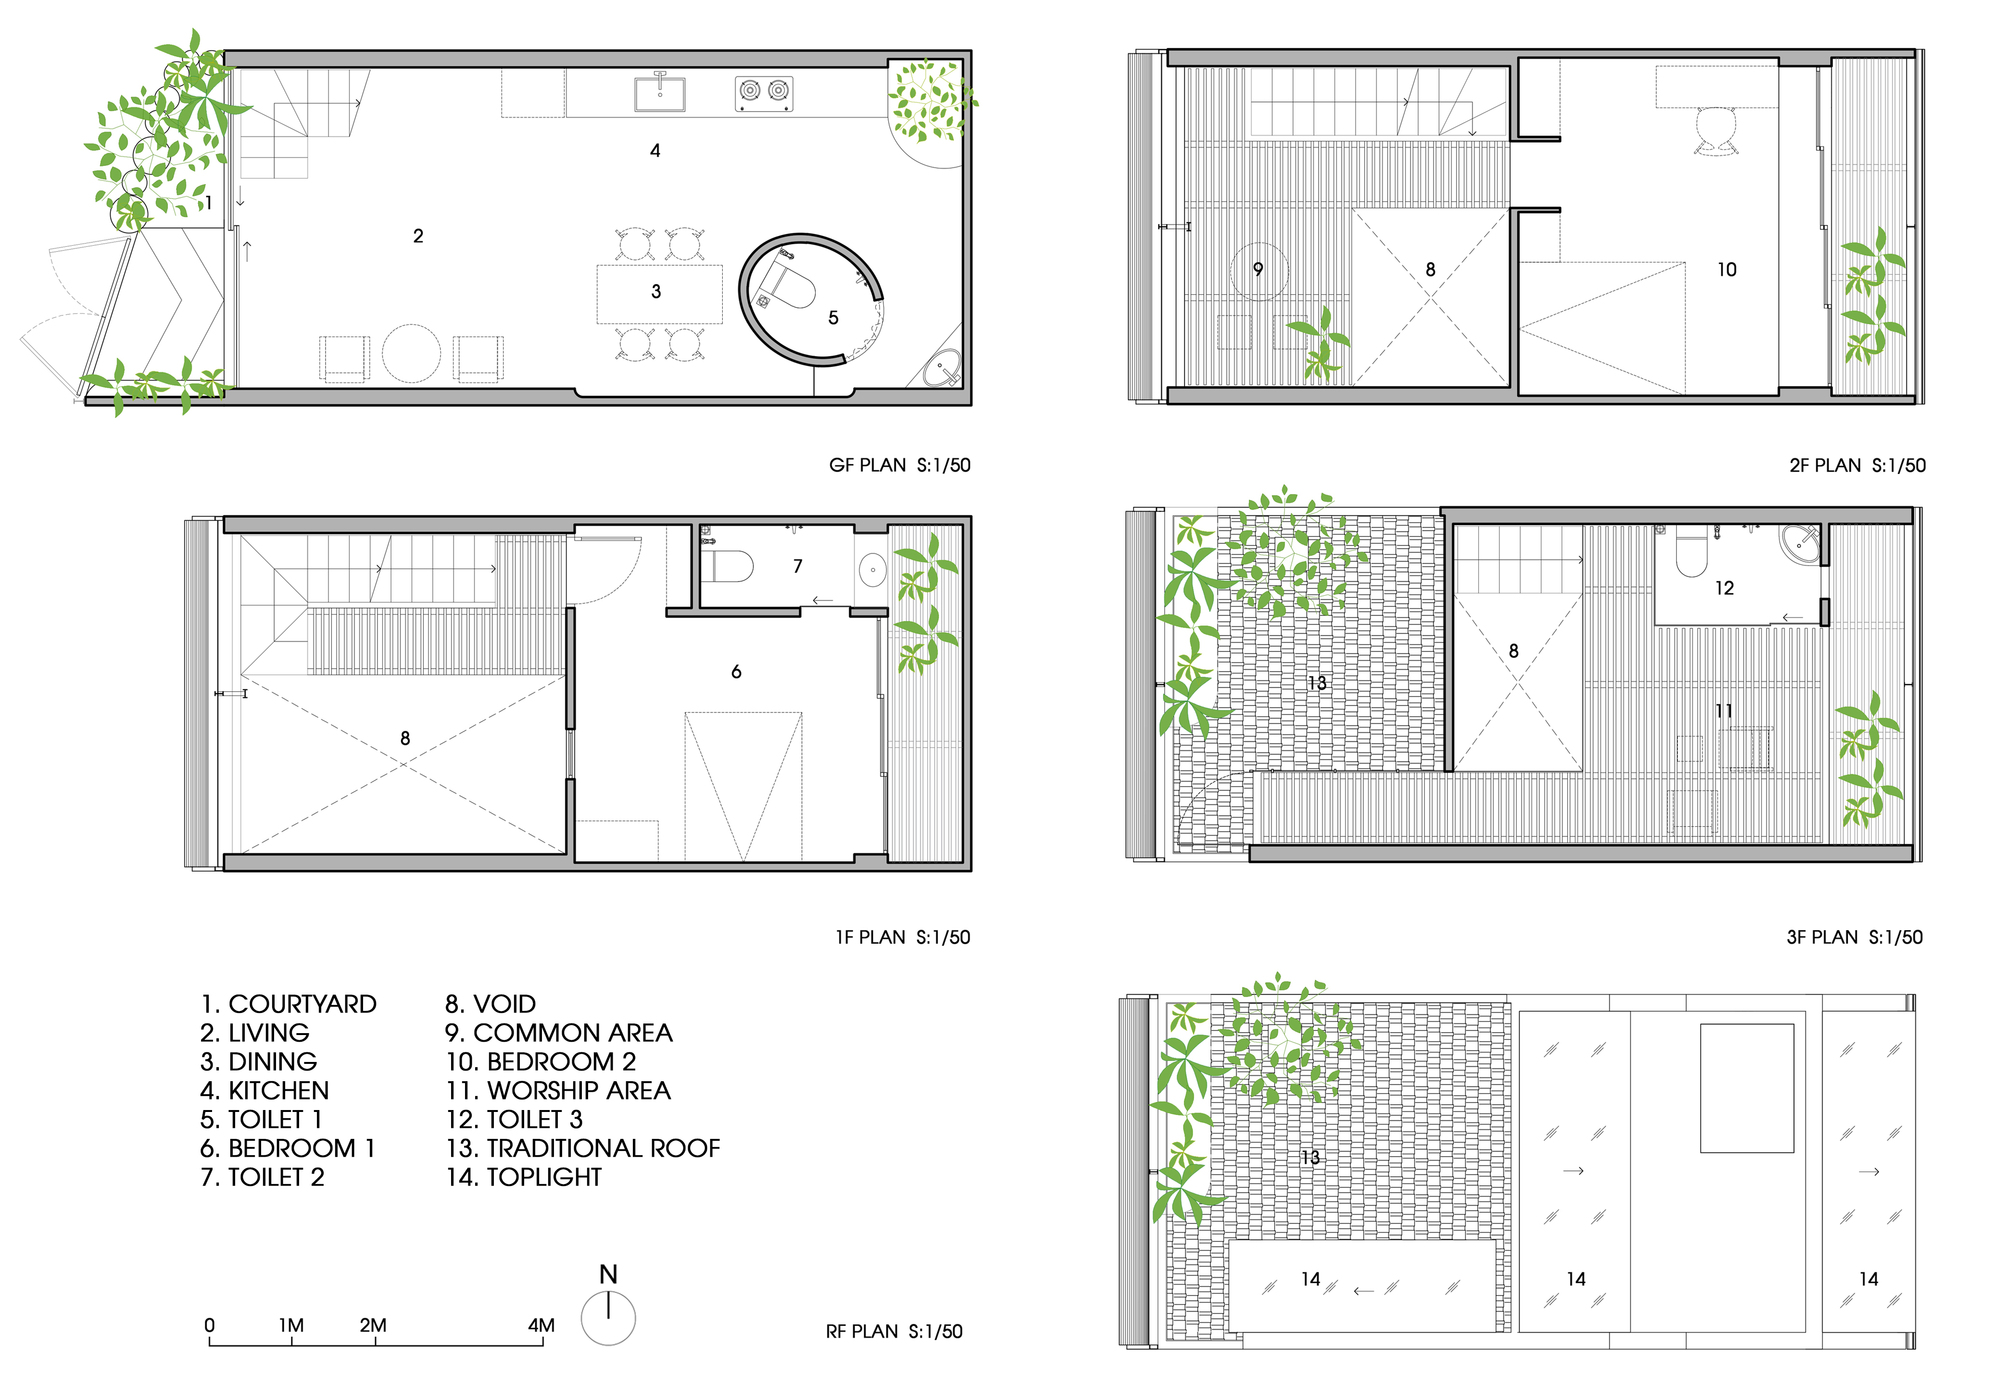 house   Time Architects  26   29  Floor Plans. Gallery of    house   Time Architects   26